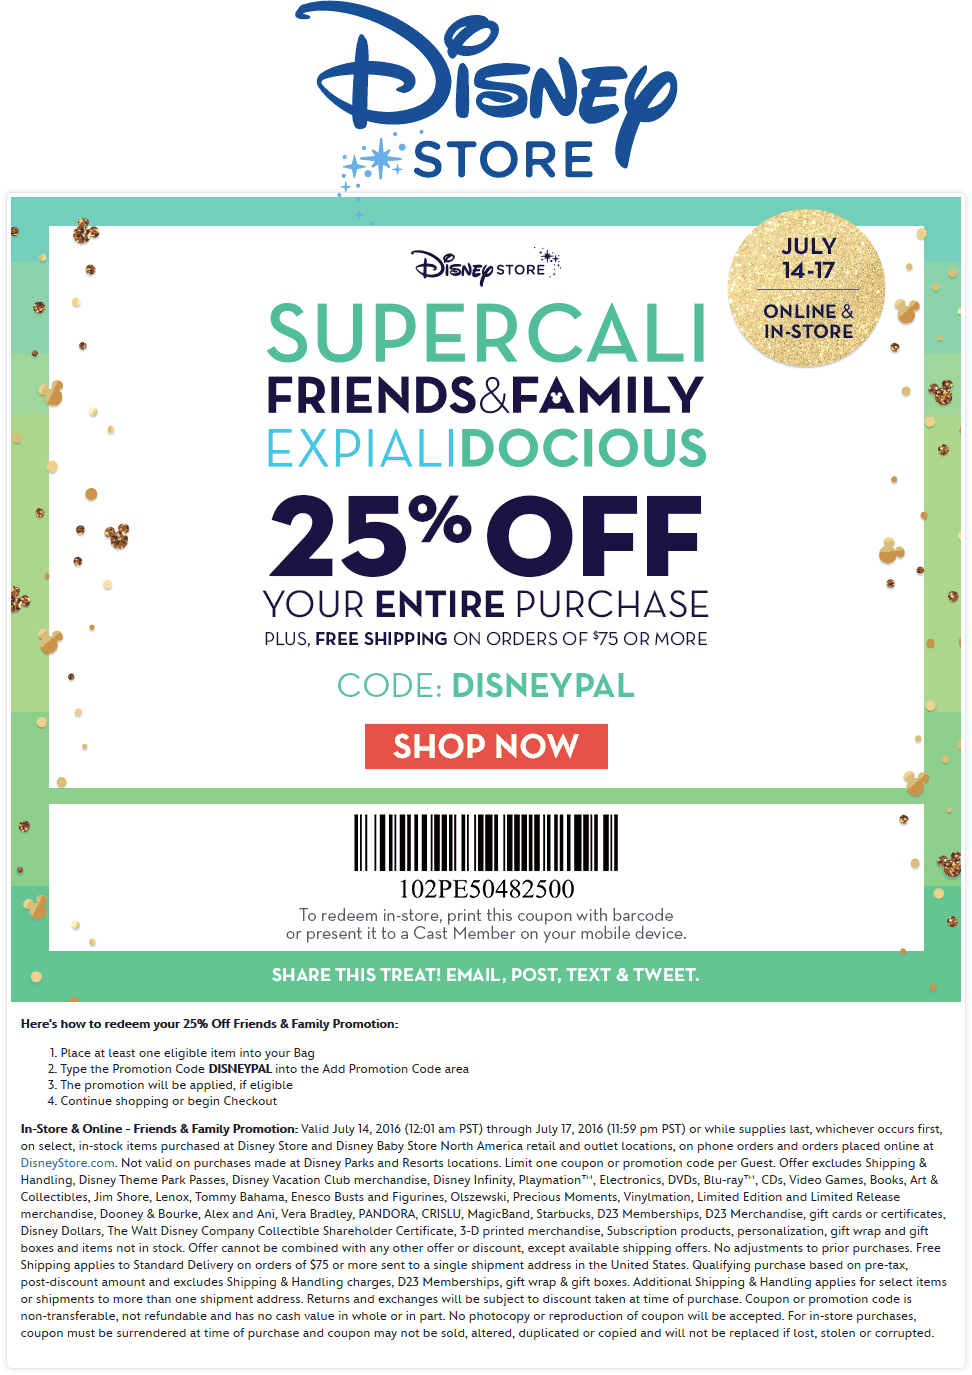 DisneyStore.com Promo Coupon 25% off at Disney Store, or online via promo code DISNEYPAL